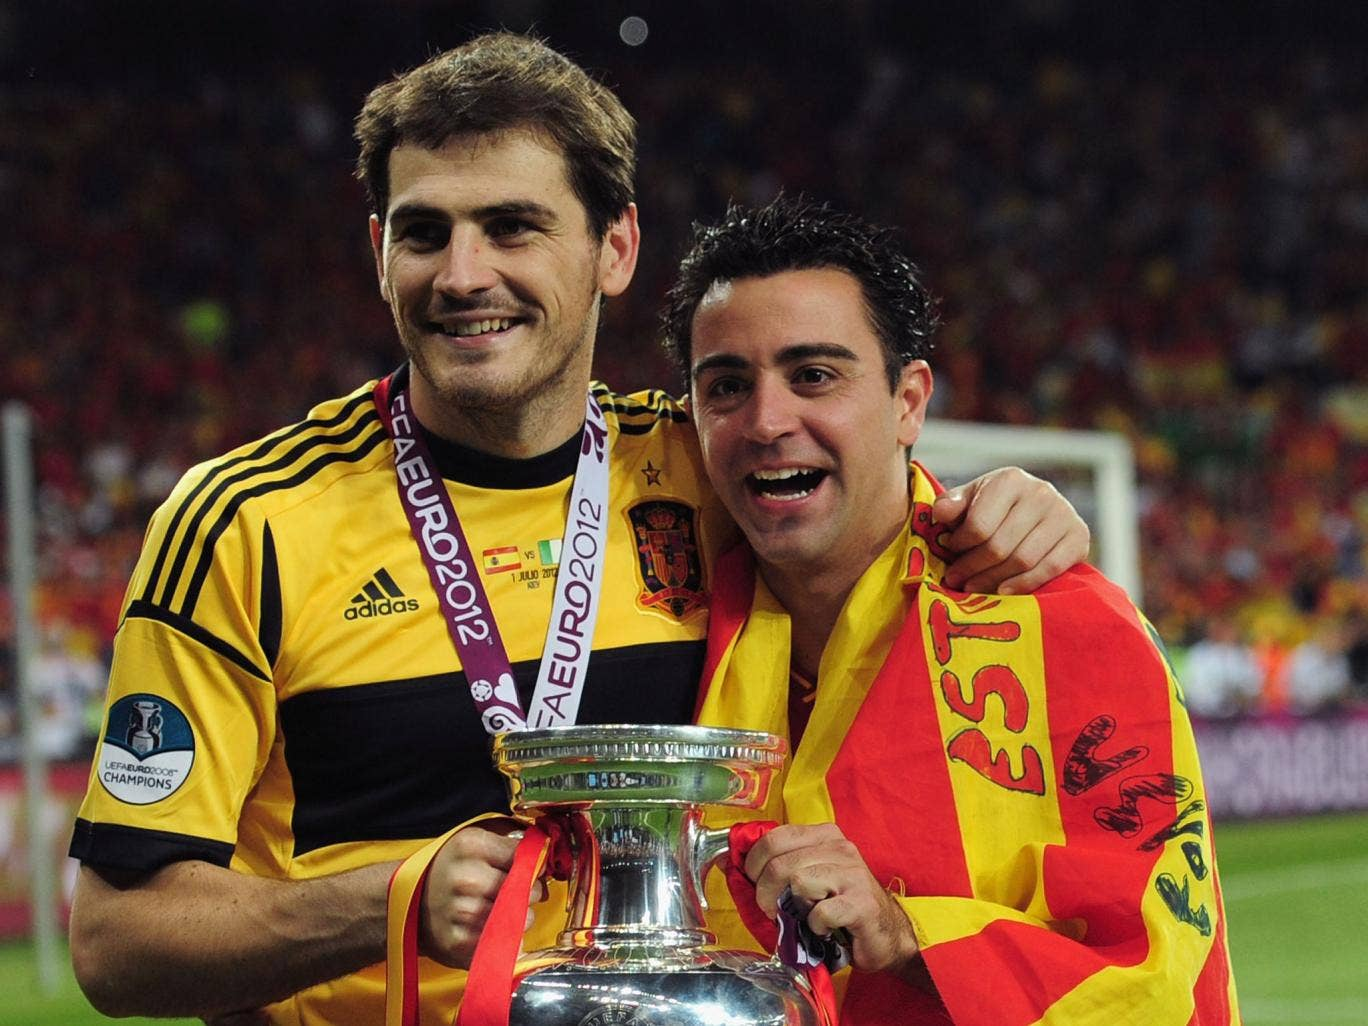 Xavi and Iker Casillas formed a bond playing together at the Under-20 World Cup in Nigeria